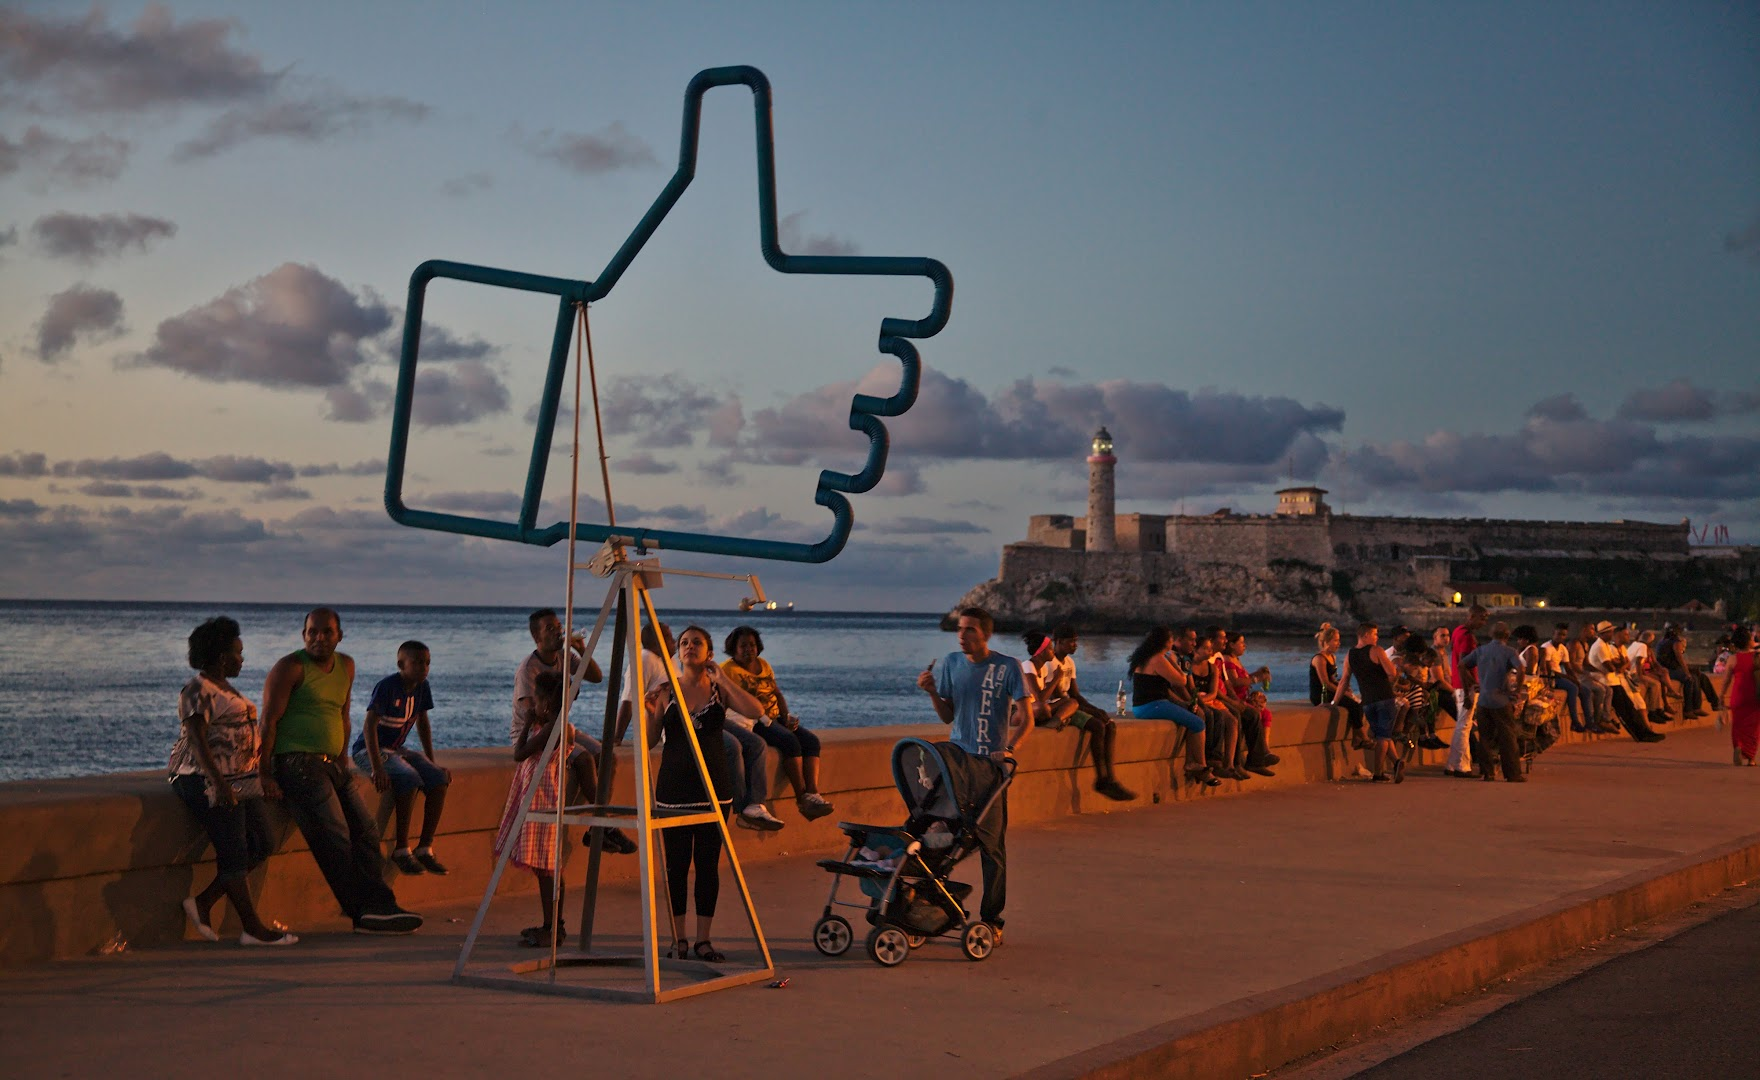 Seems that Cubans have heard of Facebook, but most cannot use it